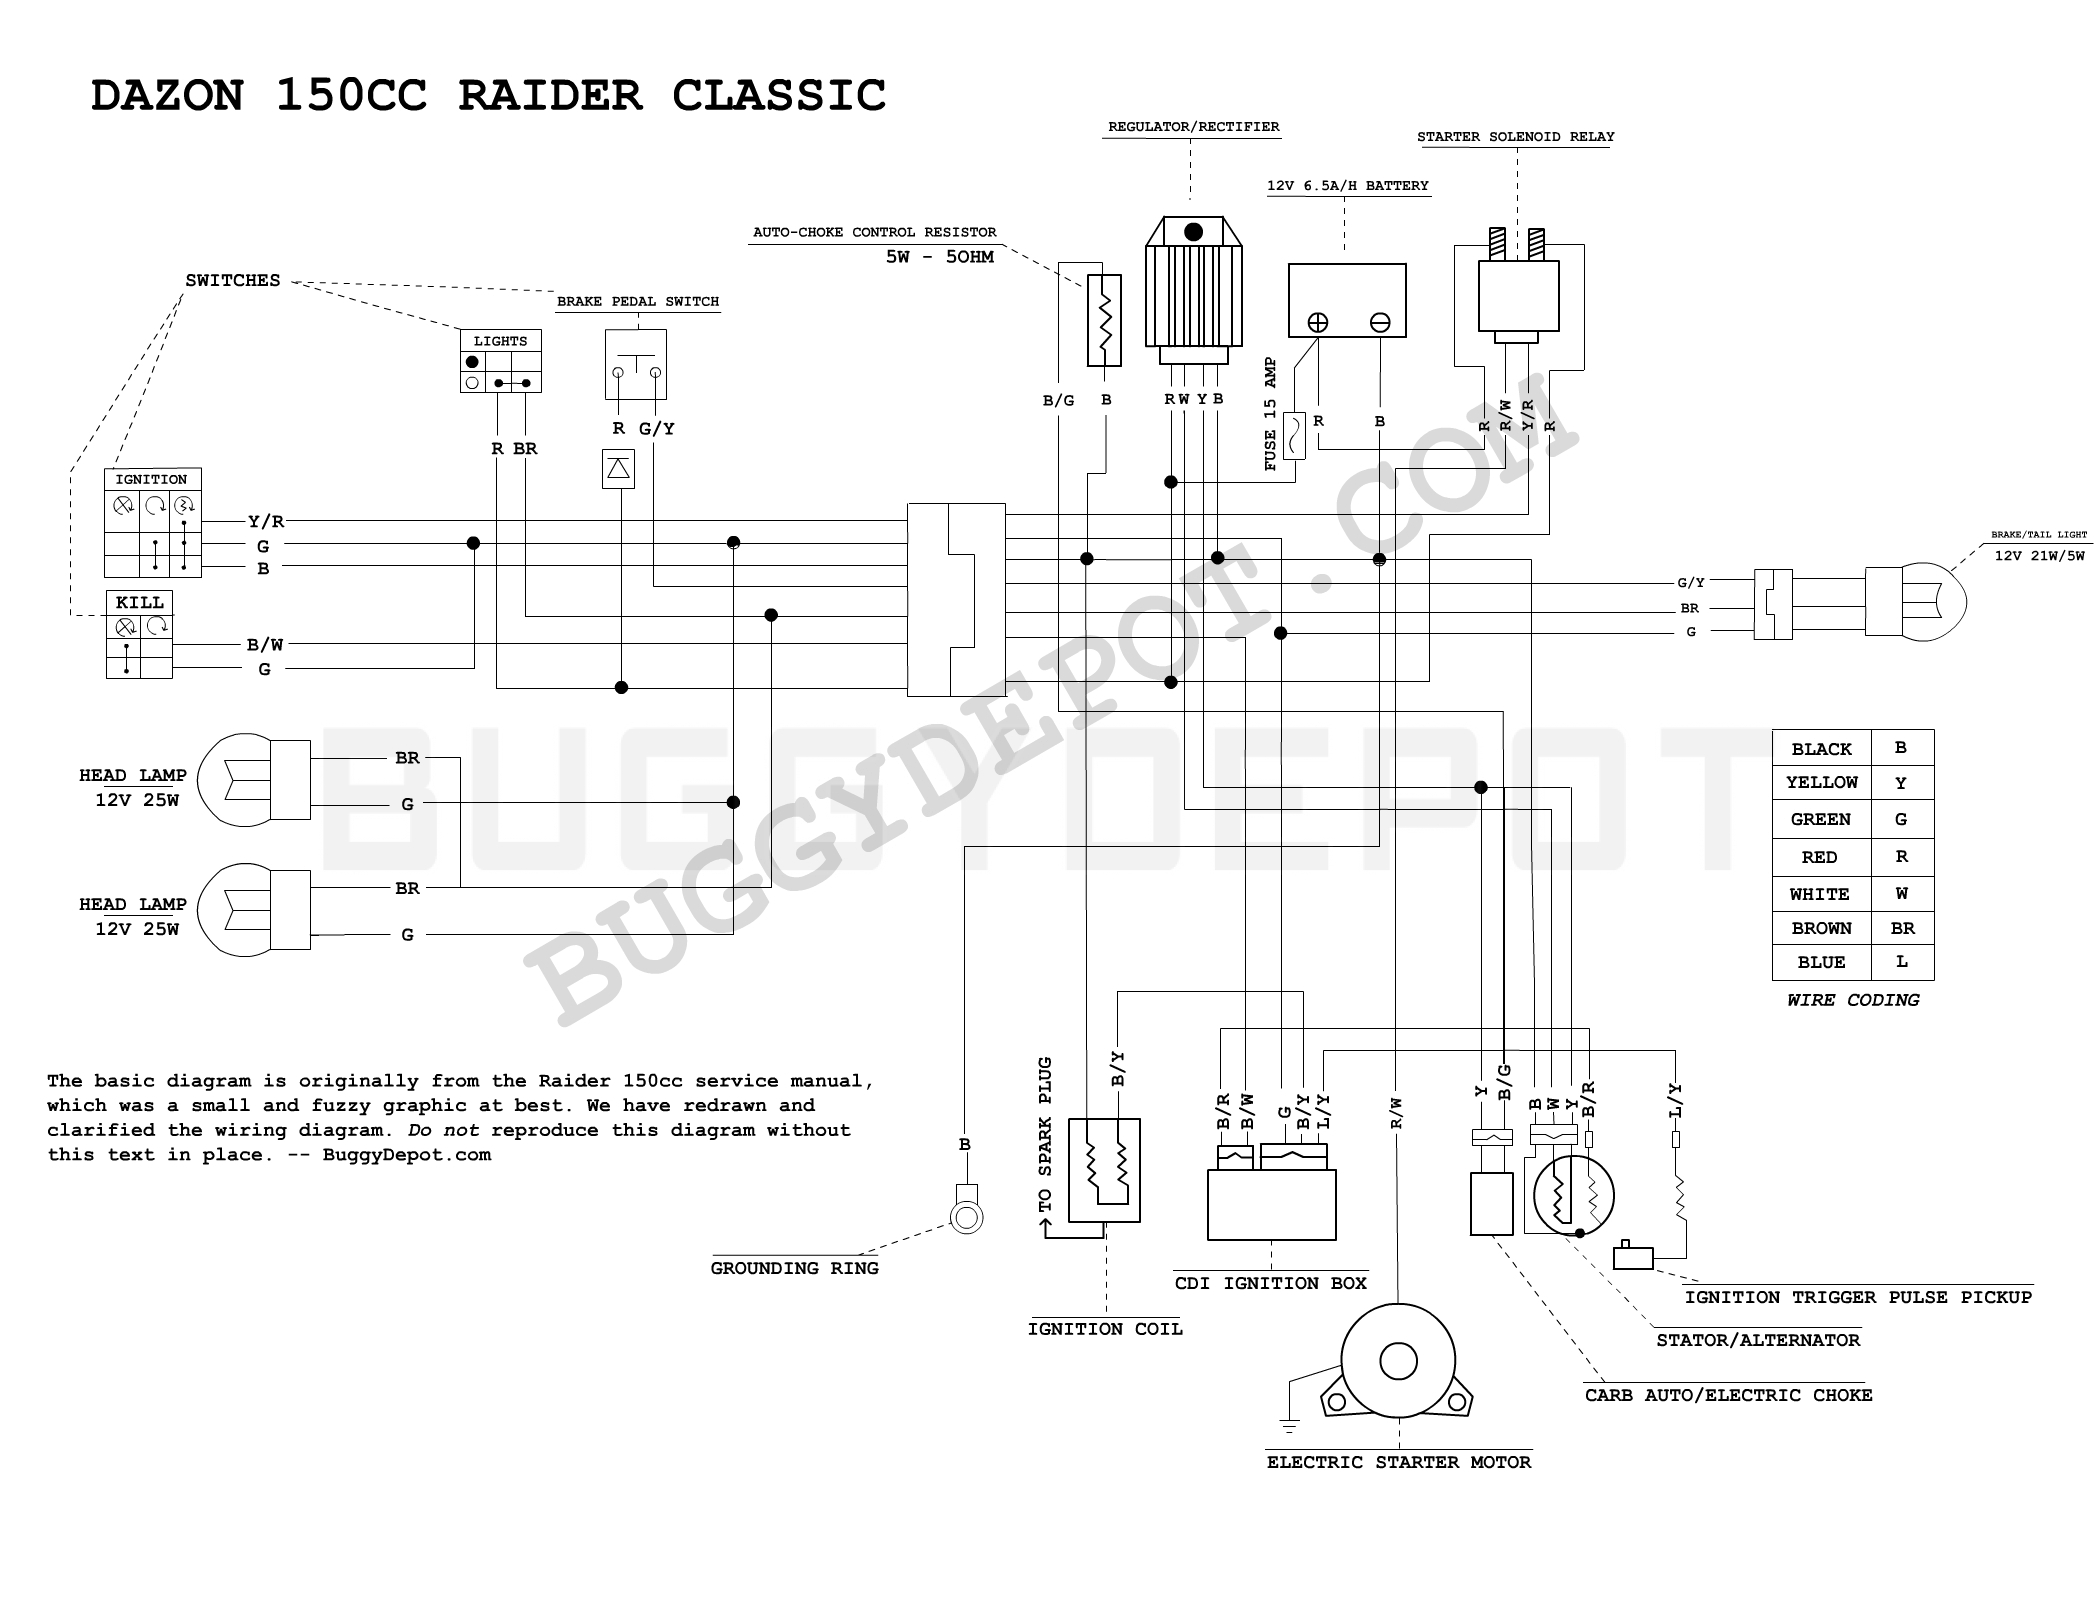 article_33_1278205207 dazon raider classic wiring diagram buggy depot technical center gy6 dc cdi wiring diagram at mifinder.co